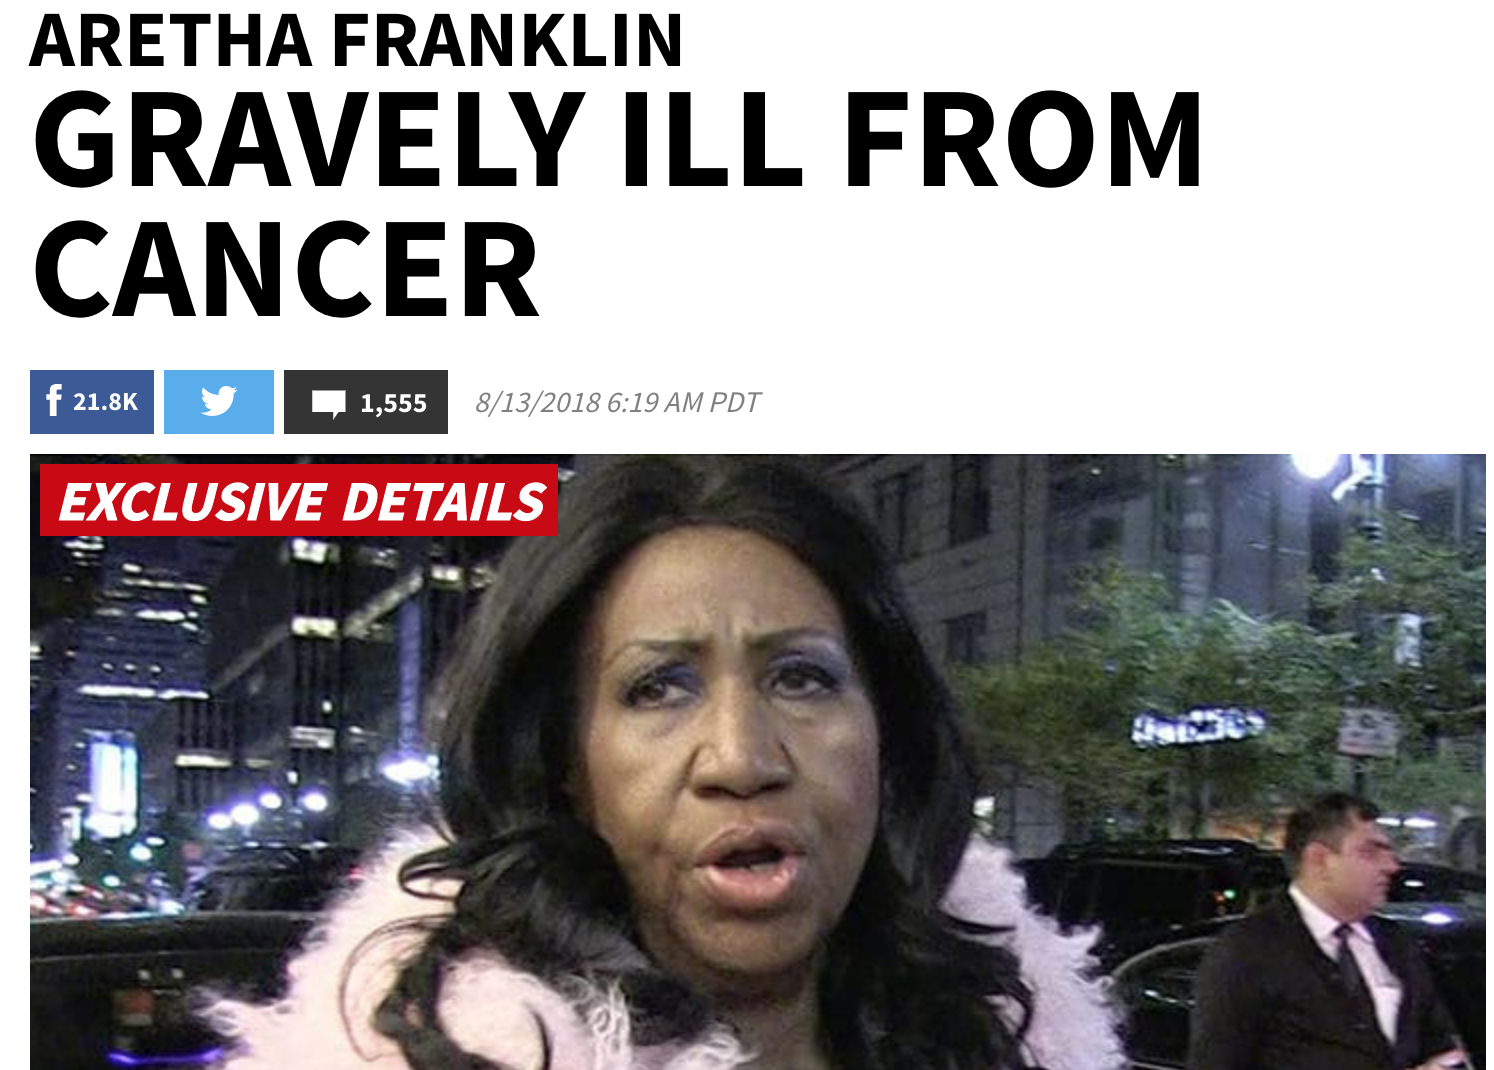 UPLOADING 1 / 1 – Aretha Franklin Deathly Ill Cancer.png ATTACHMENT DETAILS Aretha Franklin Deathly Ill Cancer